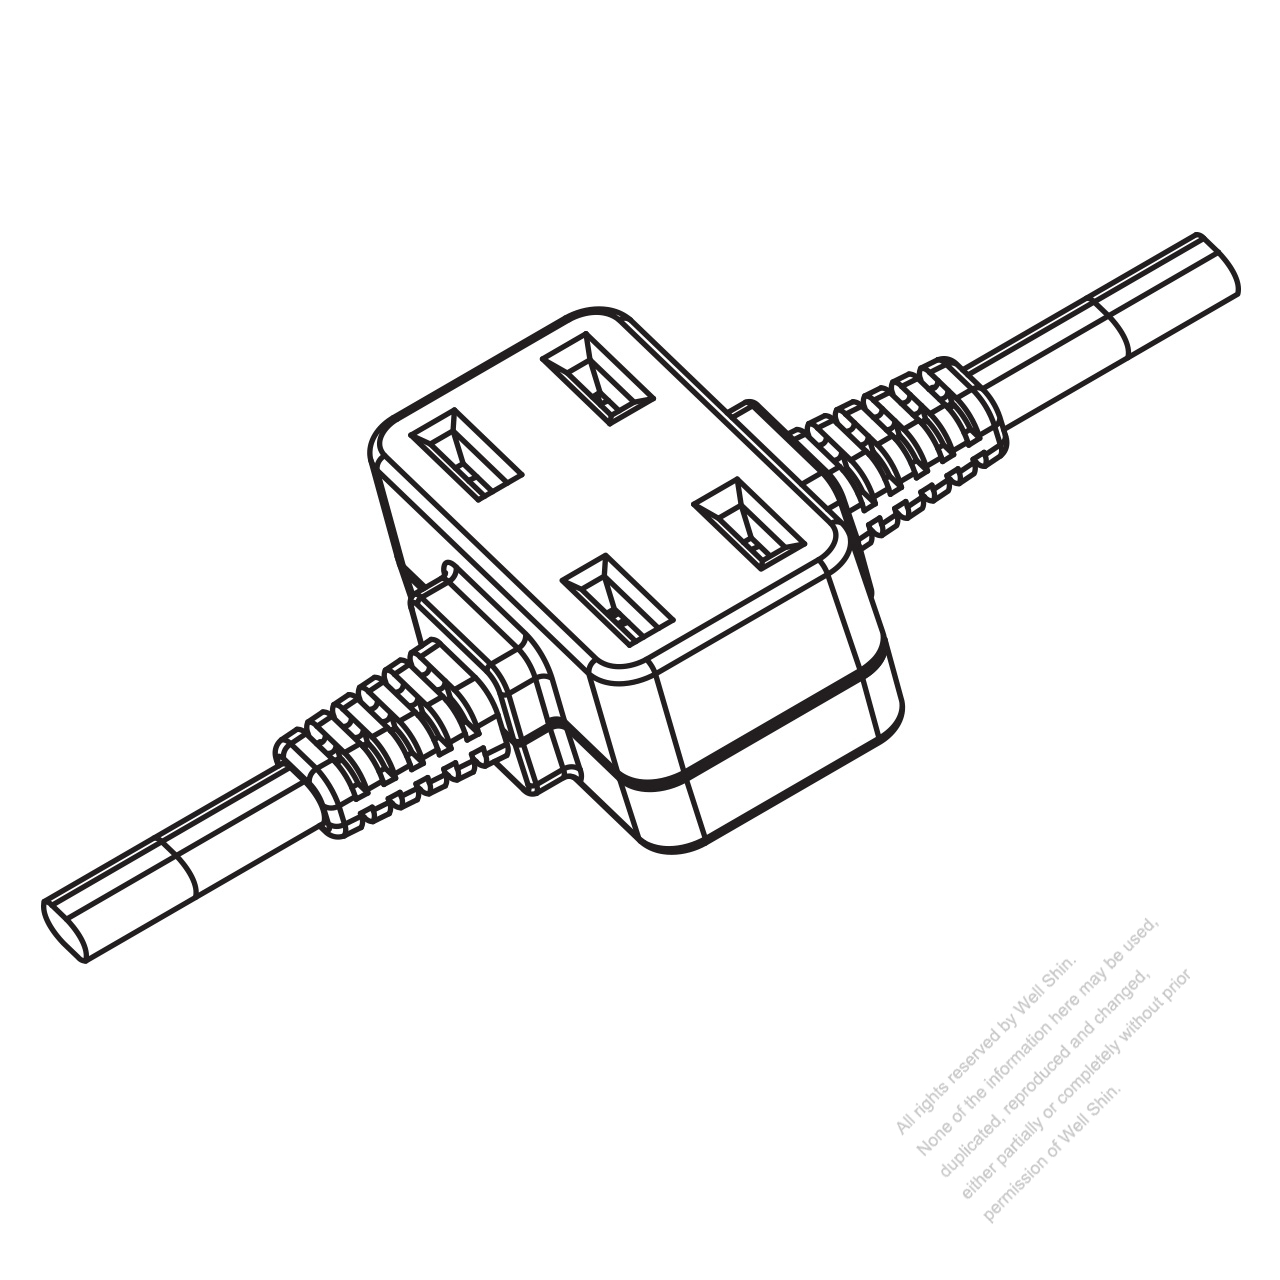 USA/Canada Multi-outlet AC Connector (NEMA 1-15R) Straight